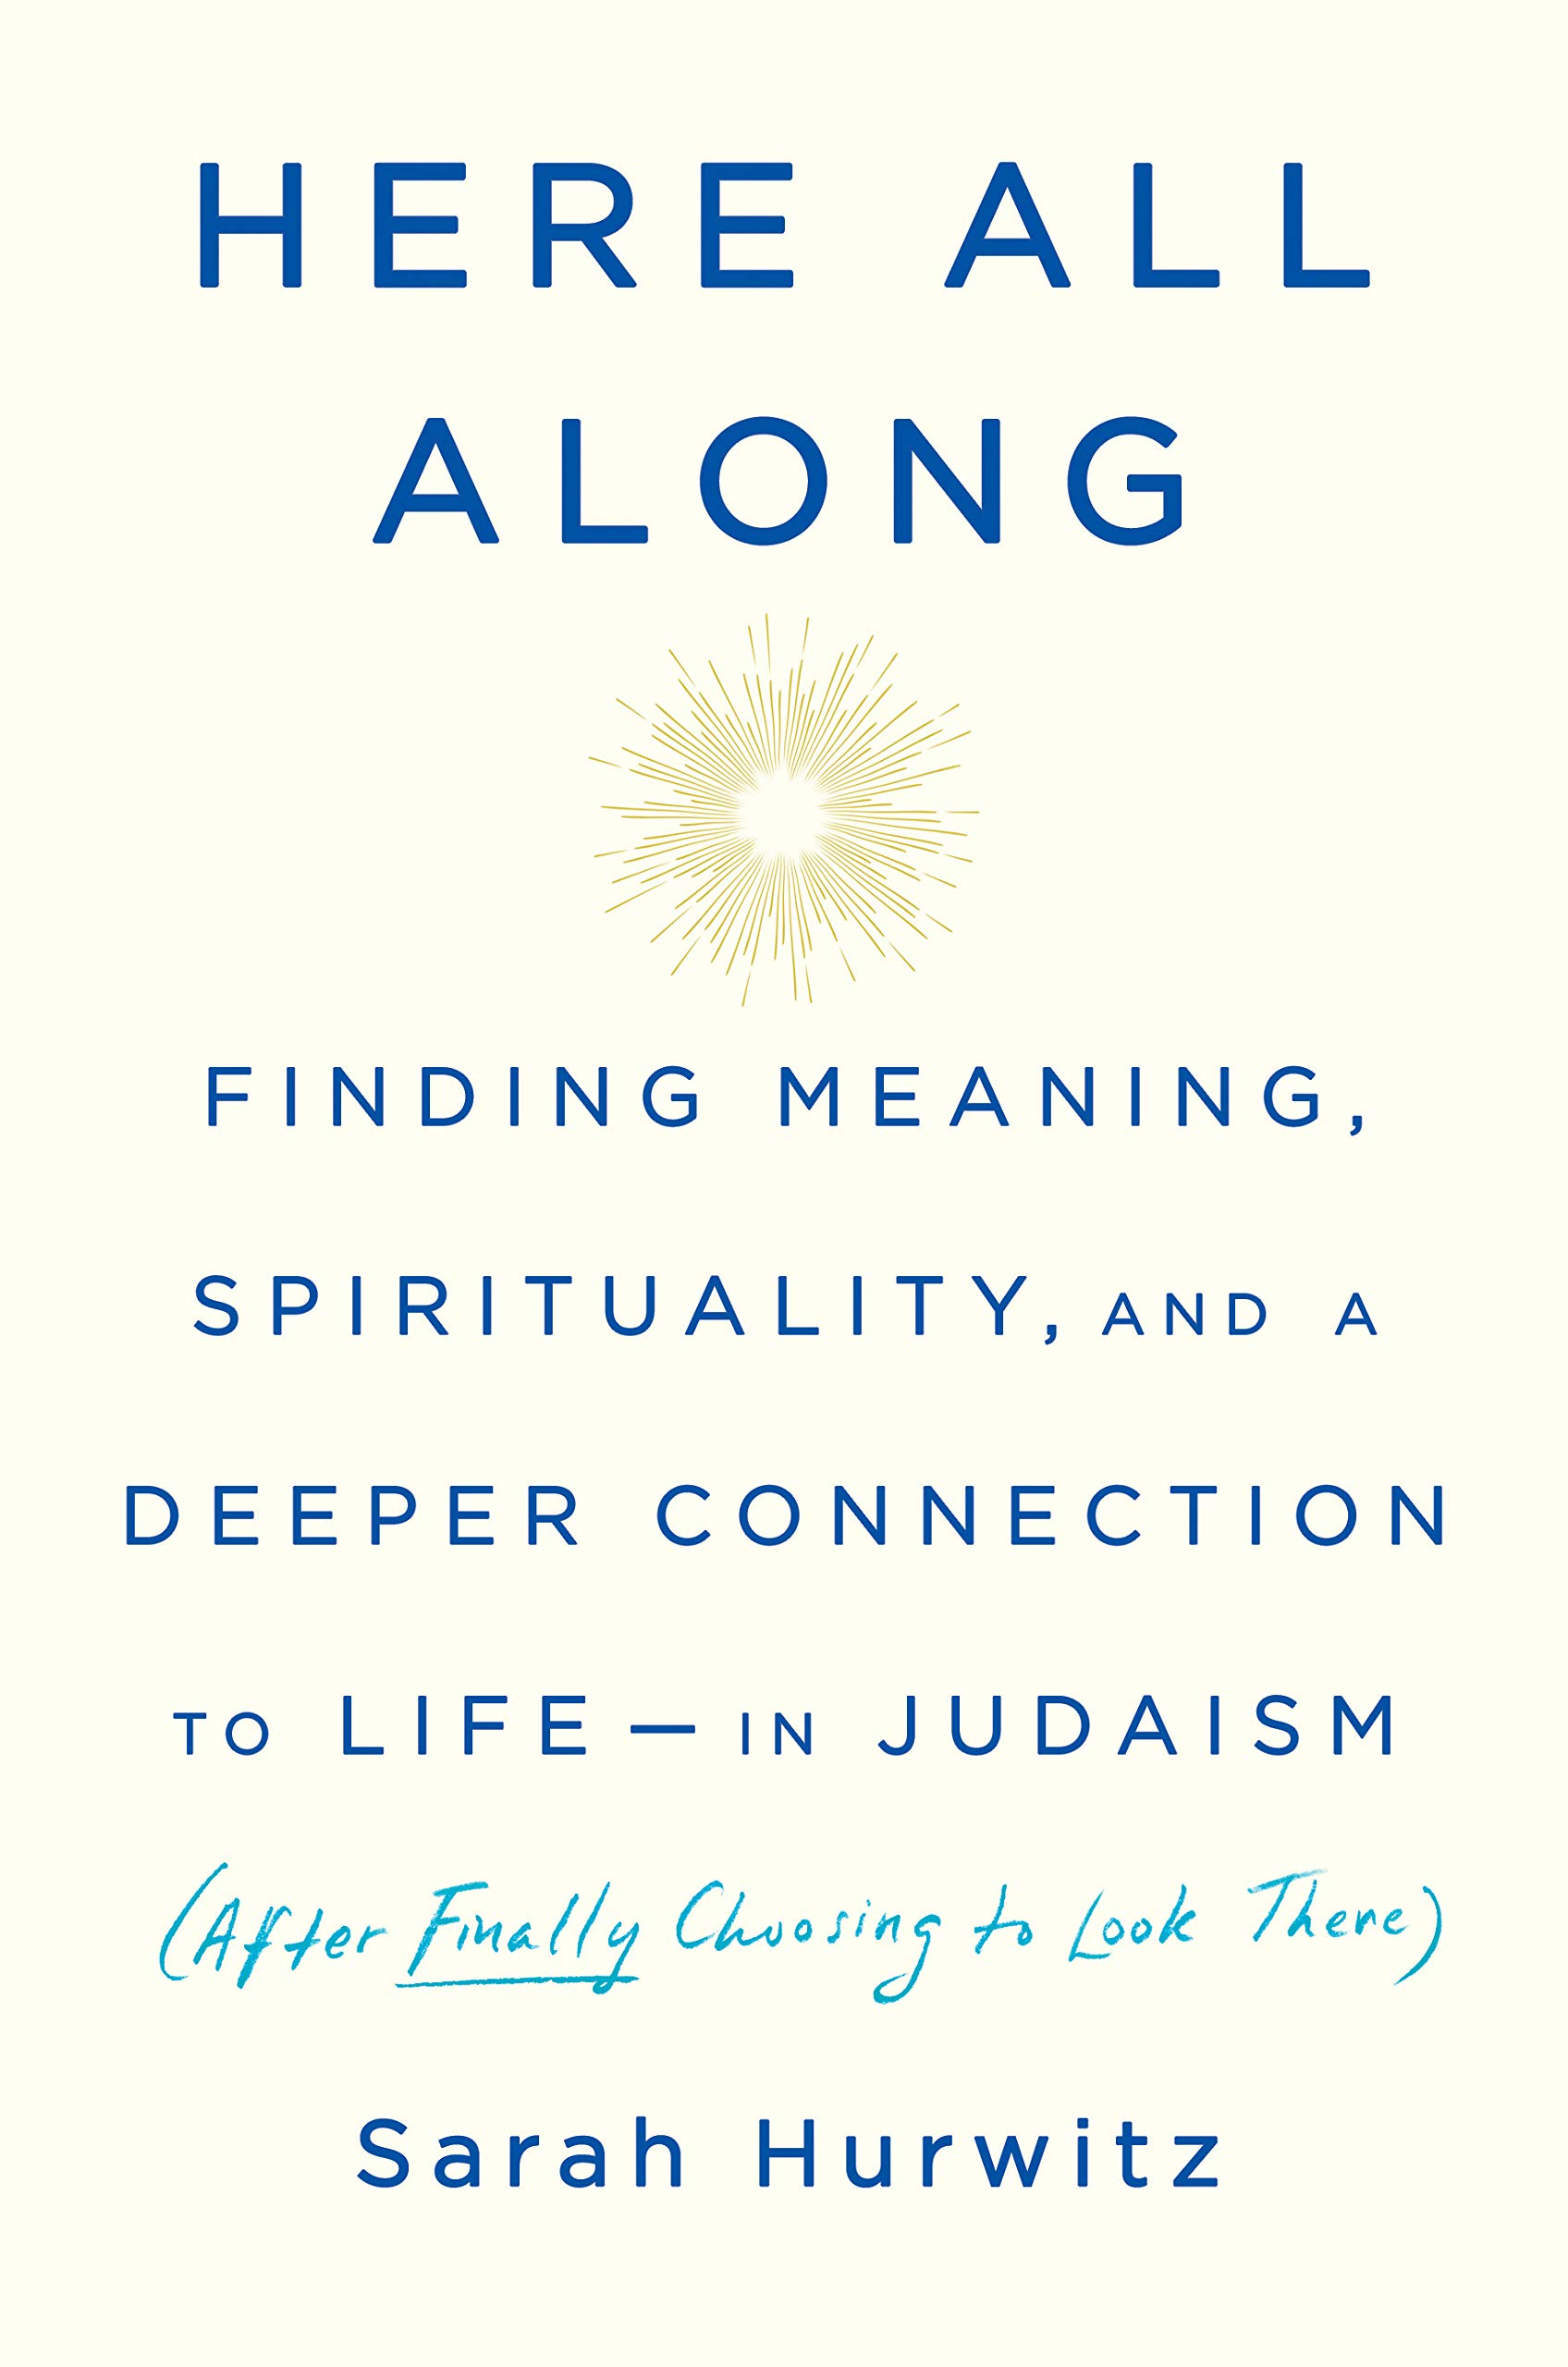 Here All Along: Finding Meaning, Spirituality, and a Deeper Connection to Life--in Judaism (After Finally Choosing to Look There) by Spiegel & Grau